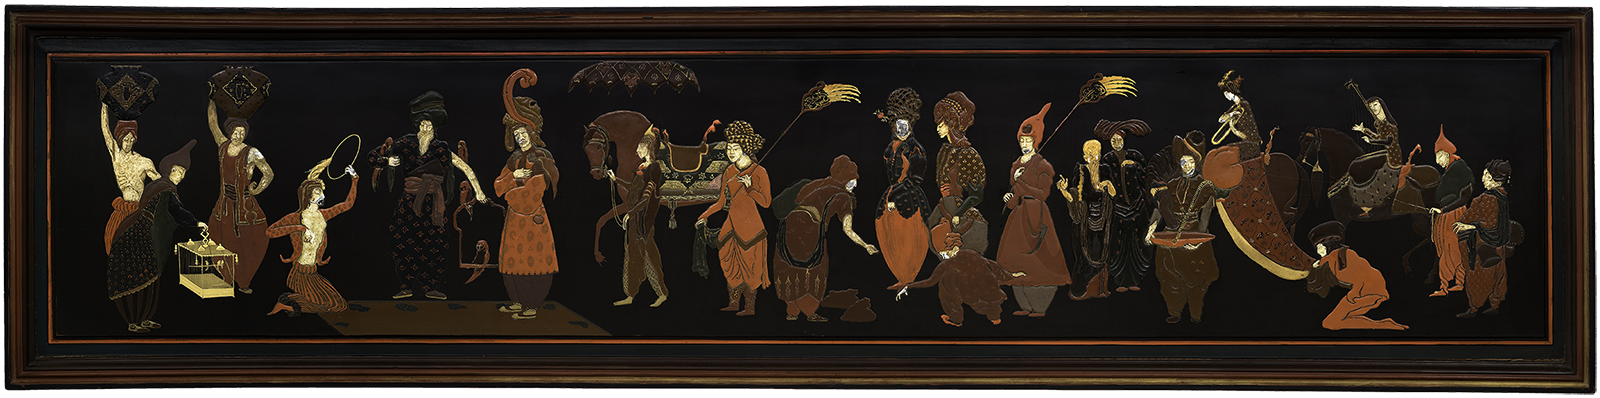 Image of a long lacquered panel featuring orientalized figures in shades of red, yellow, and brown.